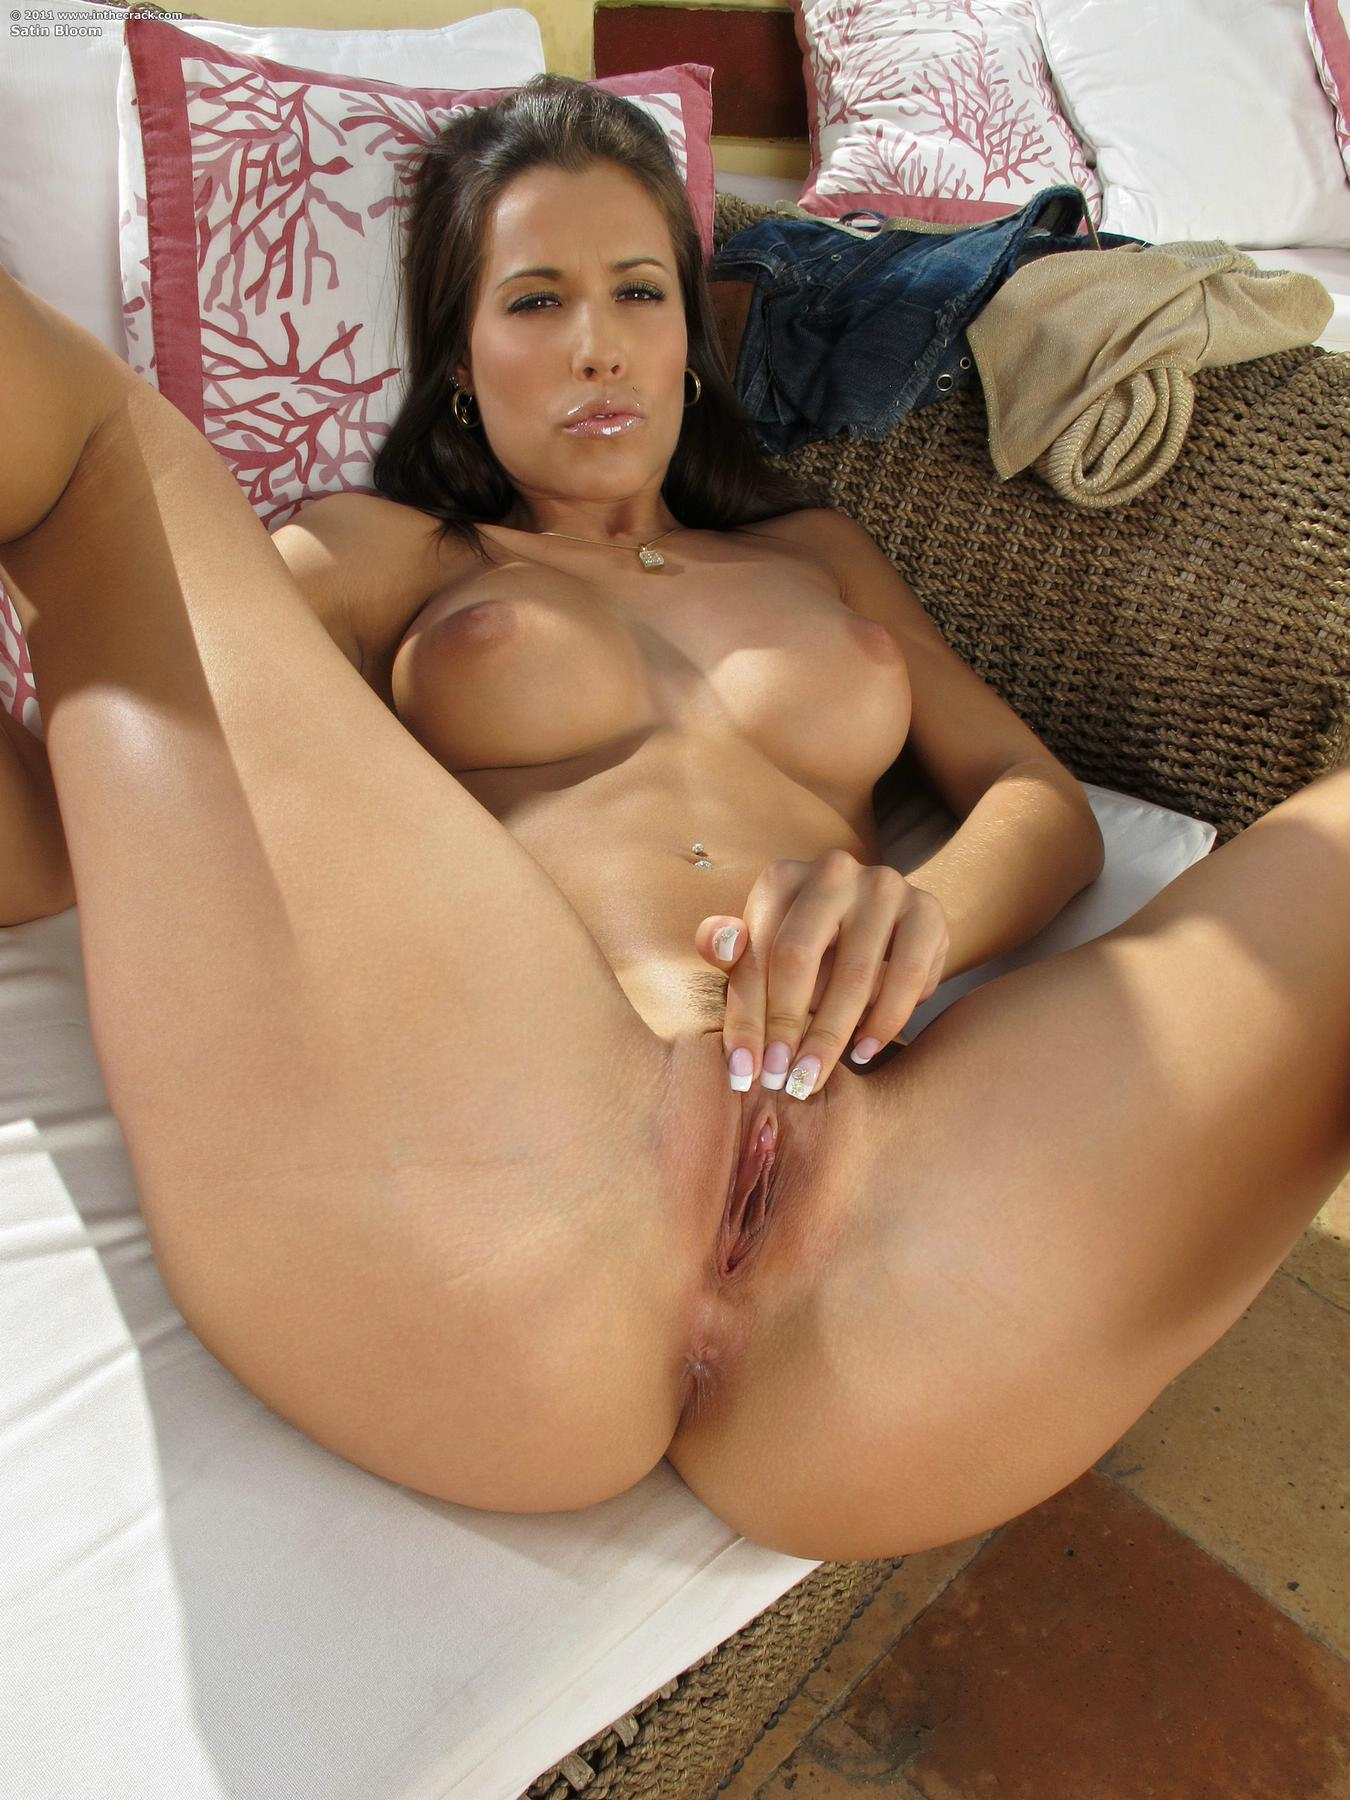 italian nud girl woman